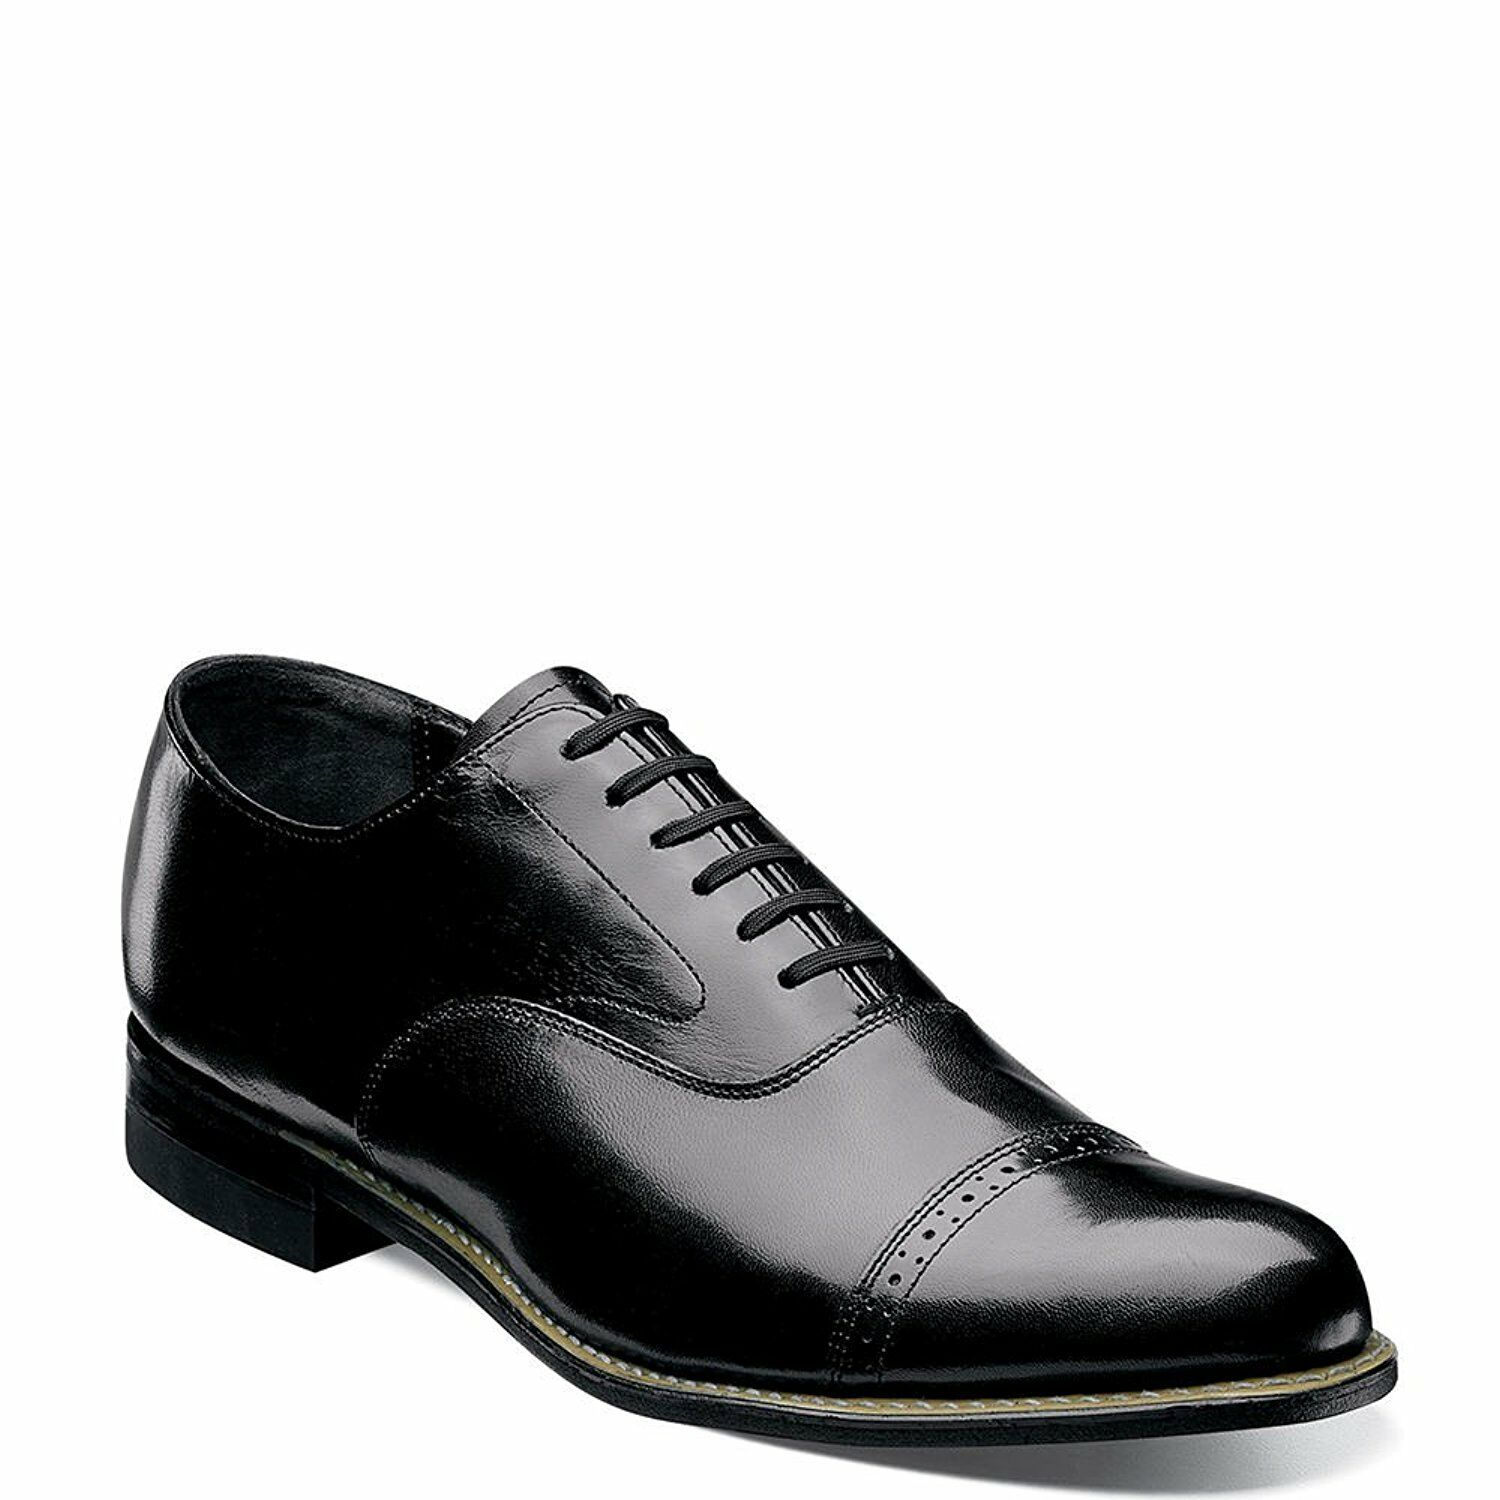 Stacy Adams CONCORDE 11003 01 Black Patent Leather Cap Toe Oxford Lace Up shoes